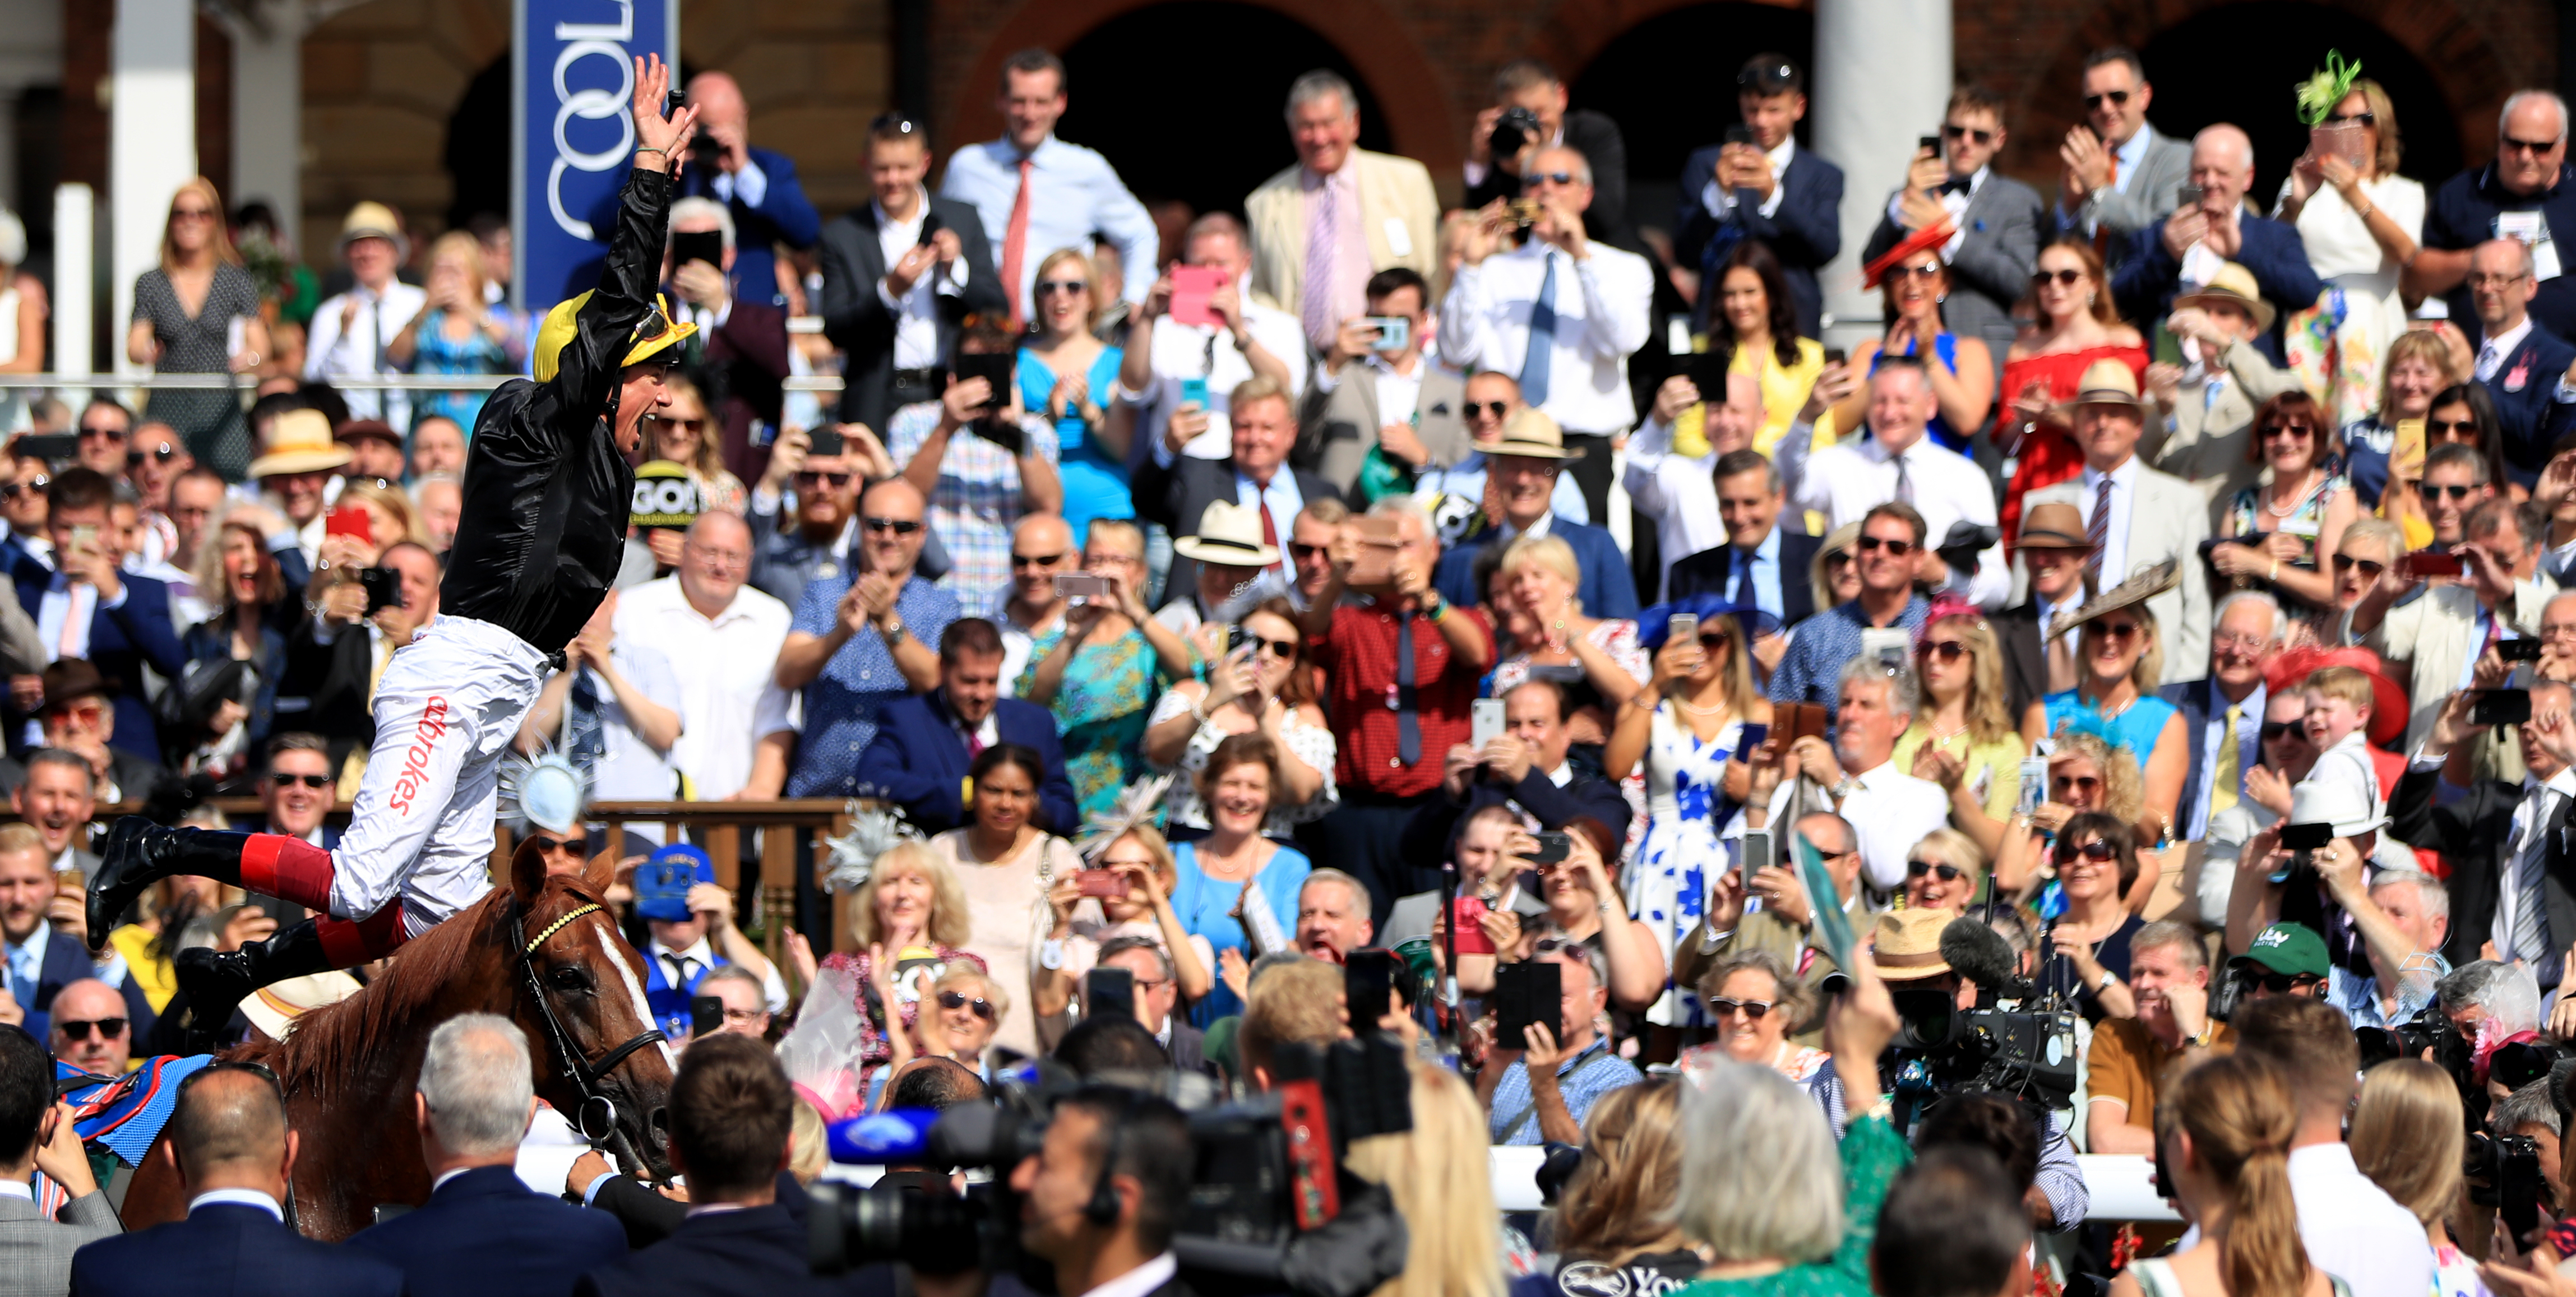 Frankie Dettori delights the crowd with his customary flying dismount after the victory of Stradivarius in the Weatherbys Hamilton Lonsdale Cup